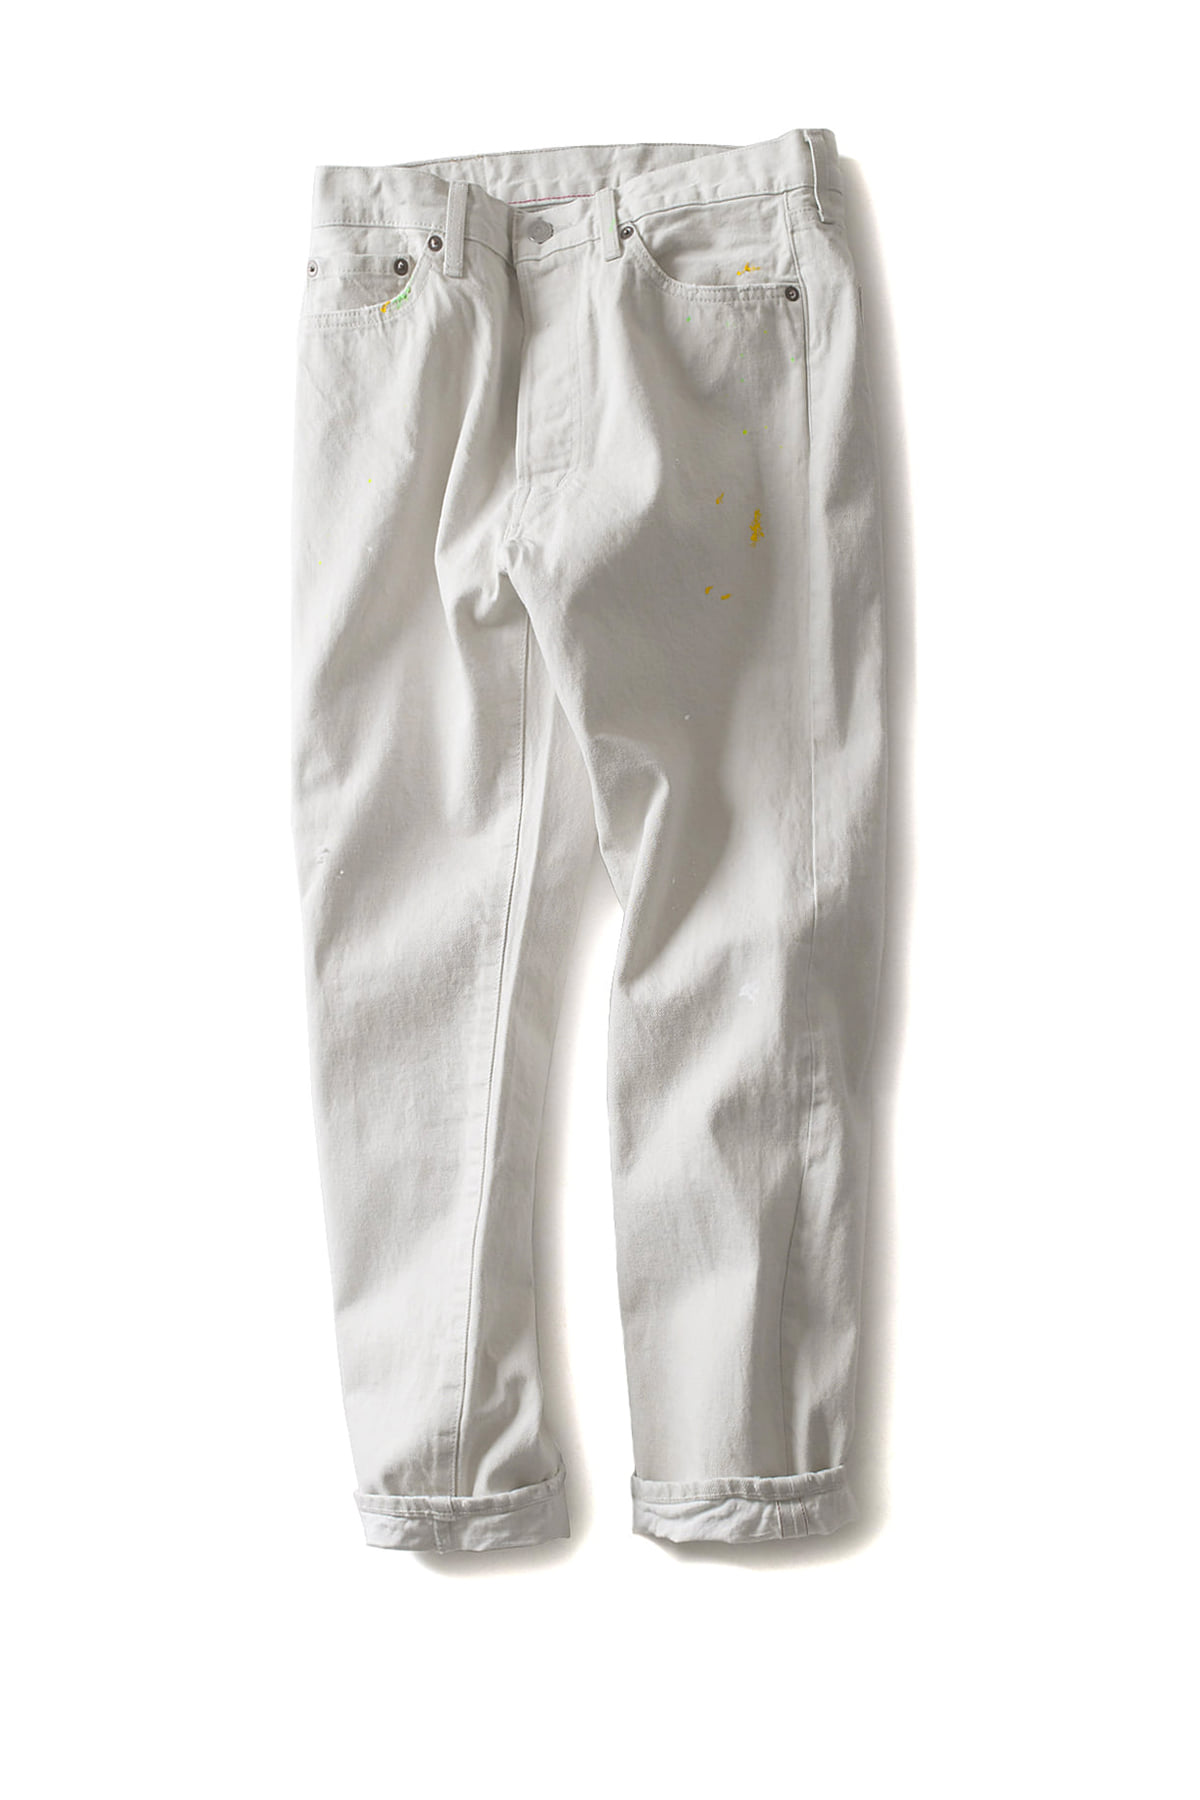 ordinary fits : 5pocket Ankle Denim White Used (Used)